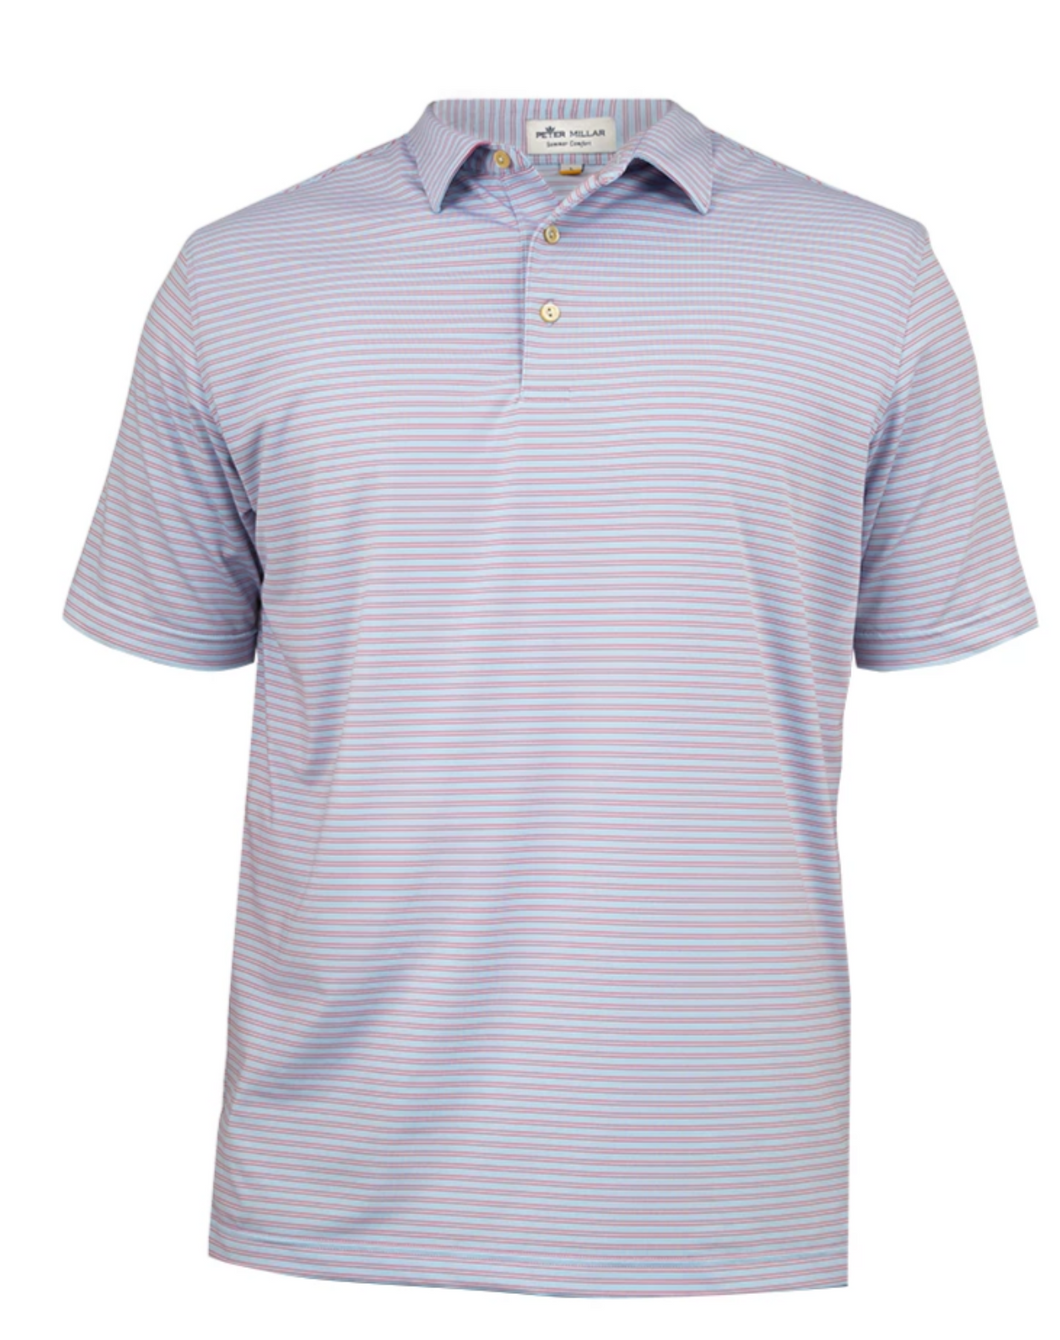 Men's Peter Millar Polo